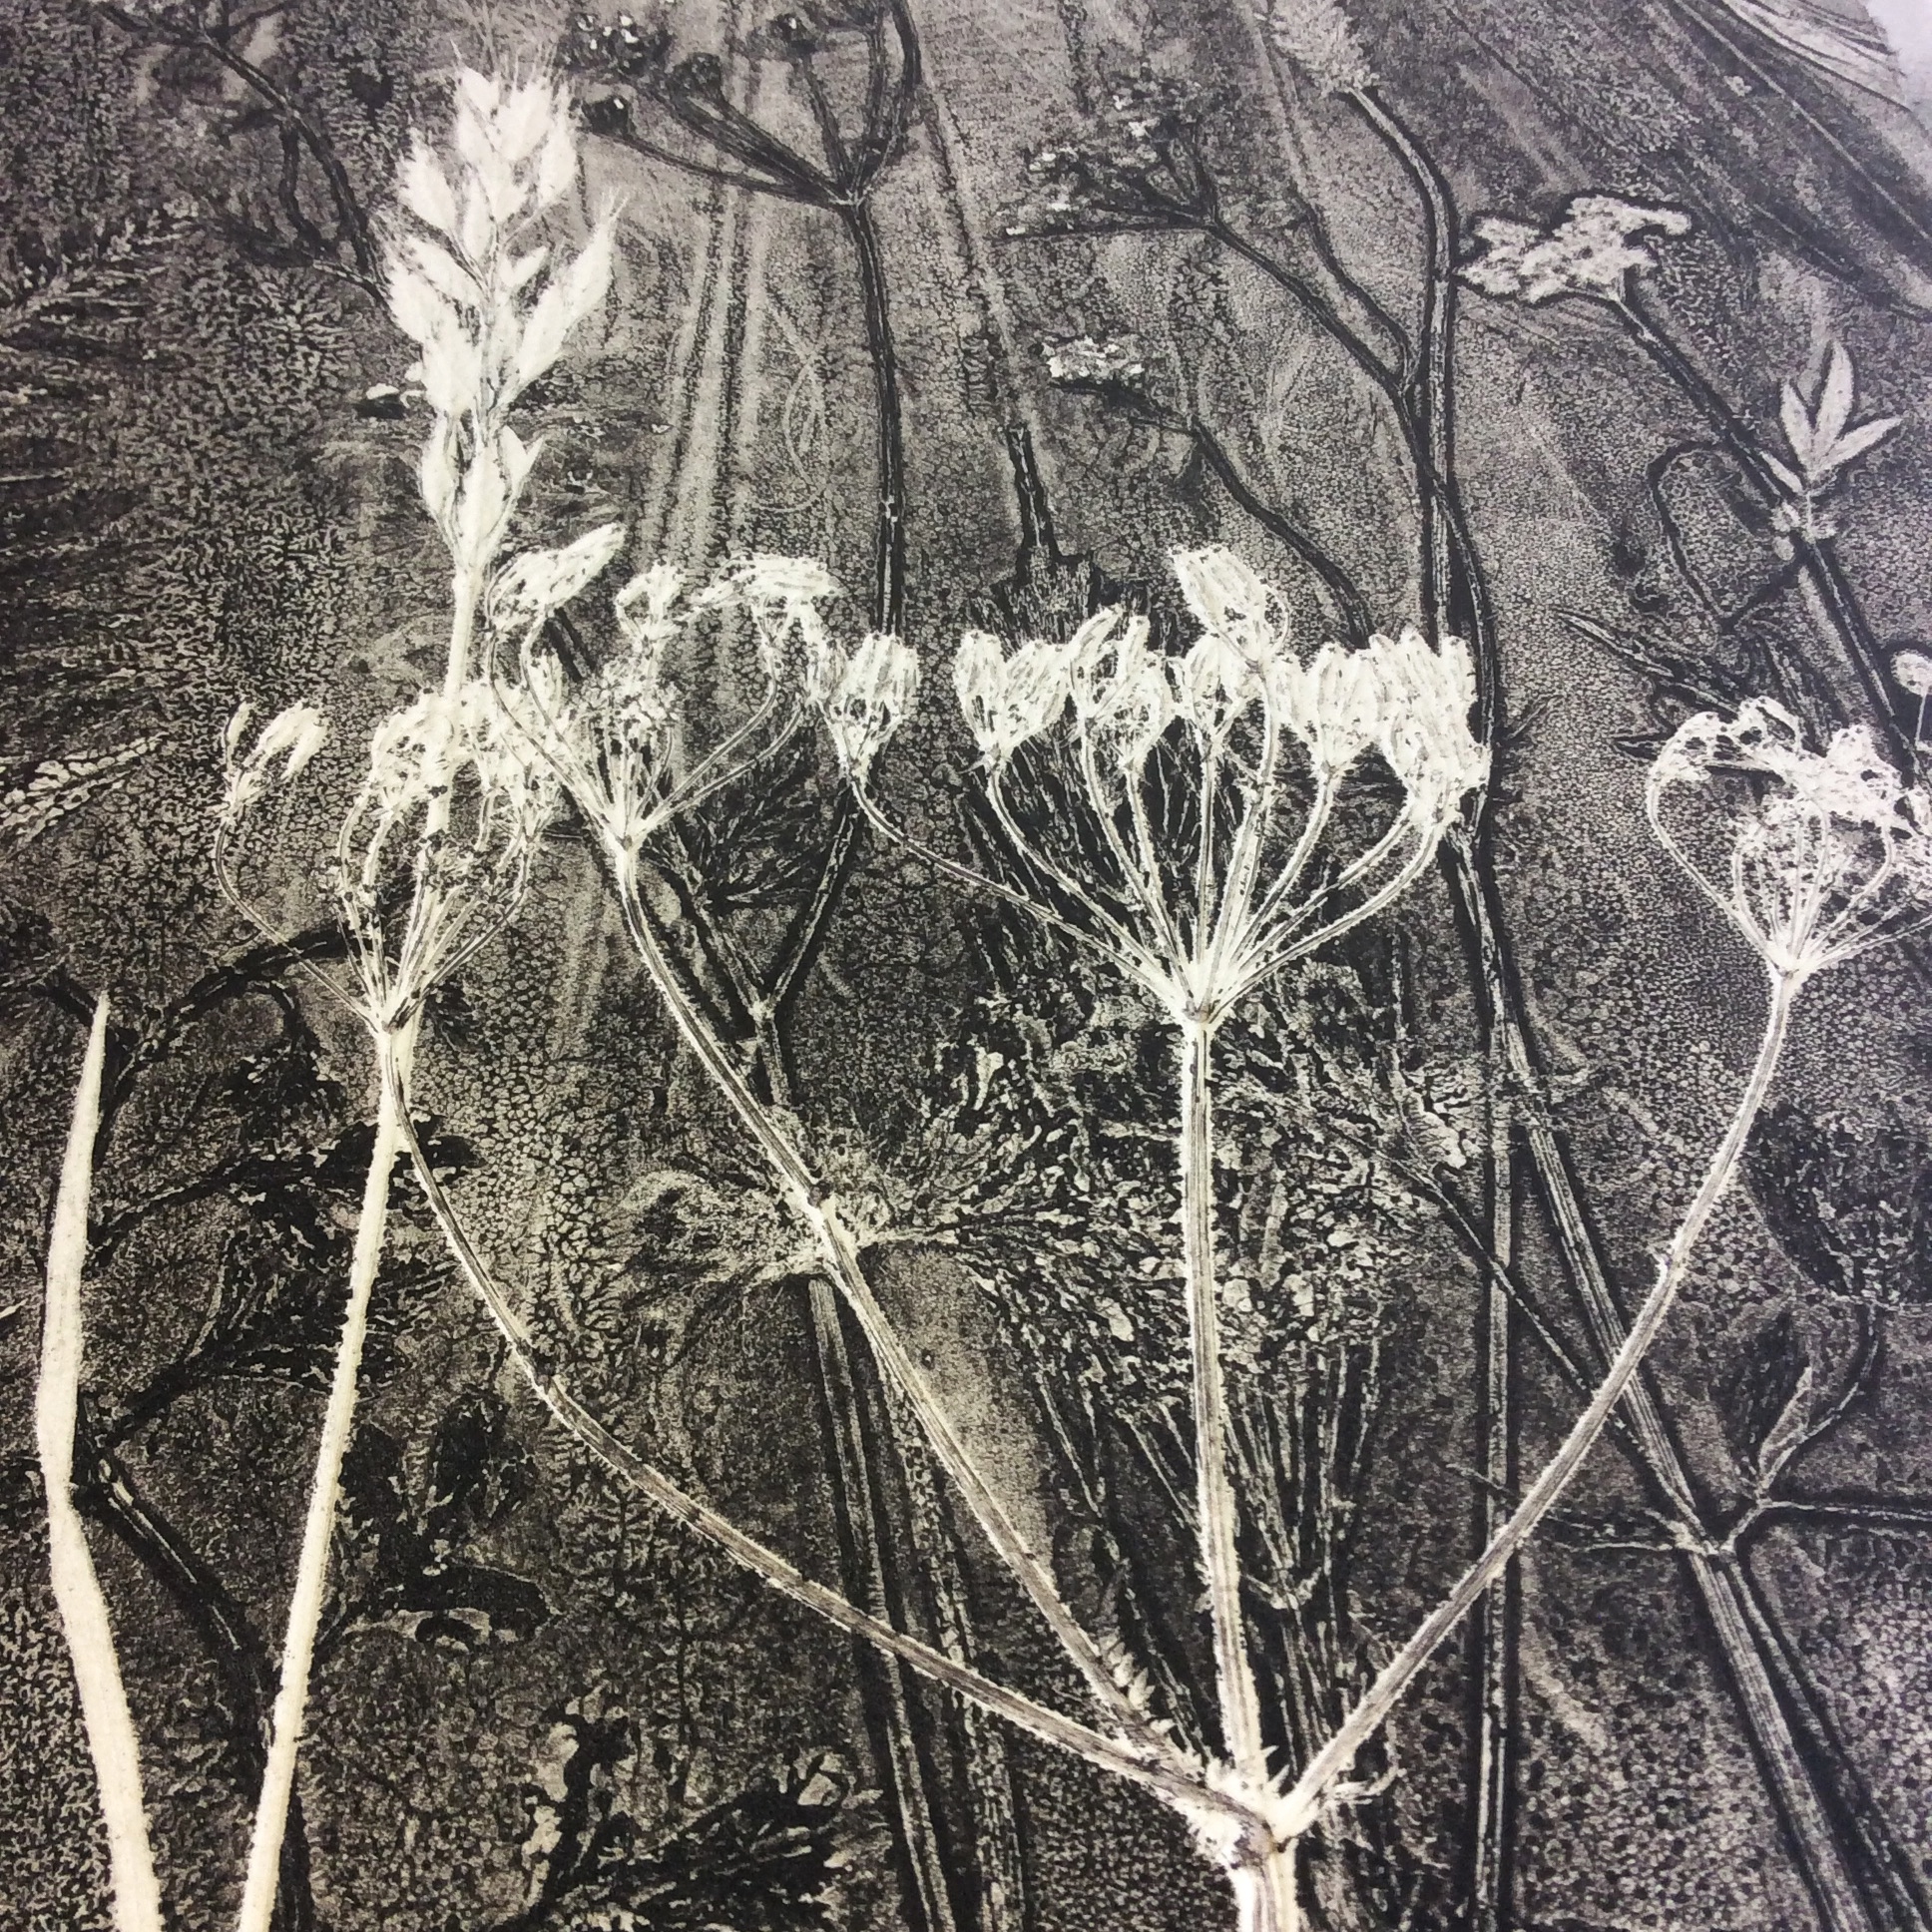 Umbellifer Monoprint - detail